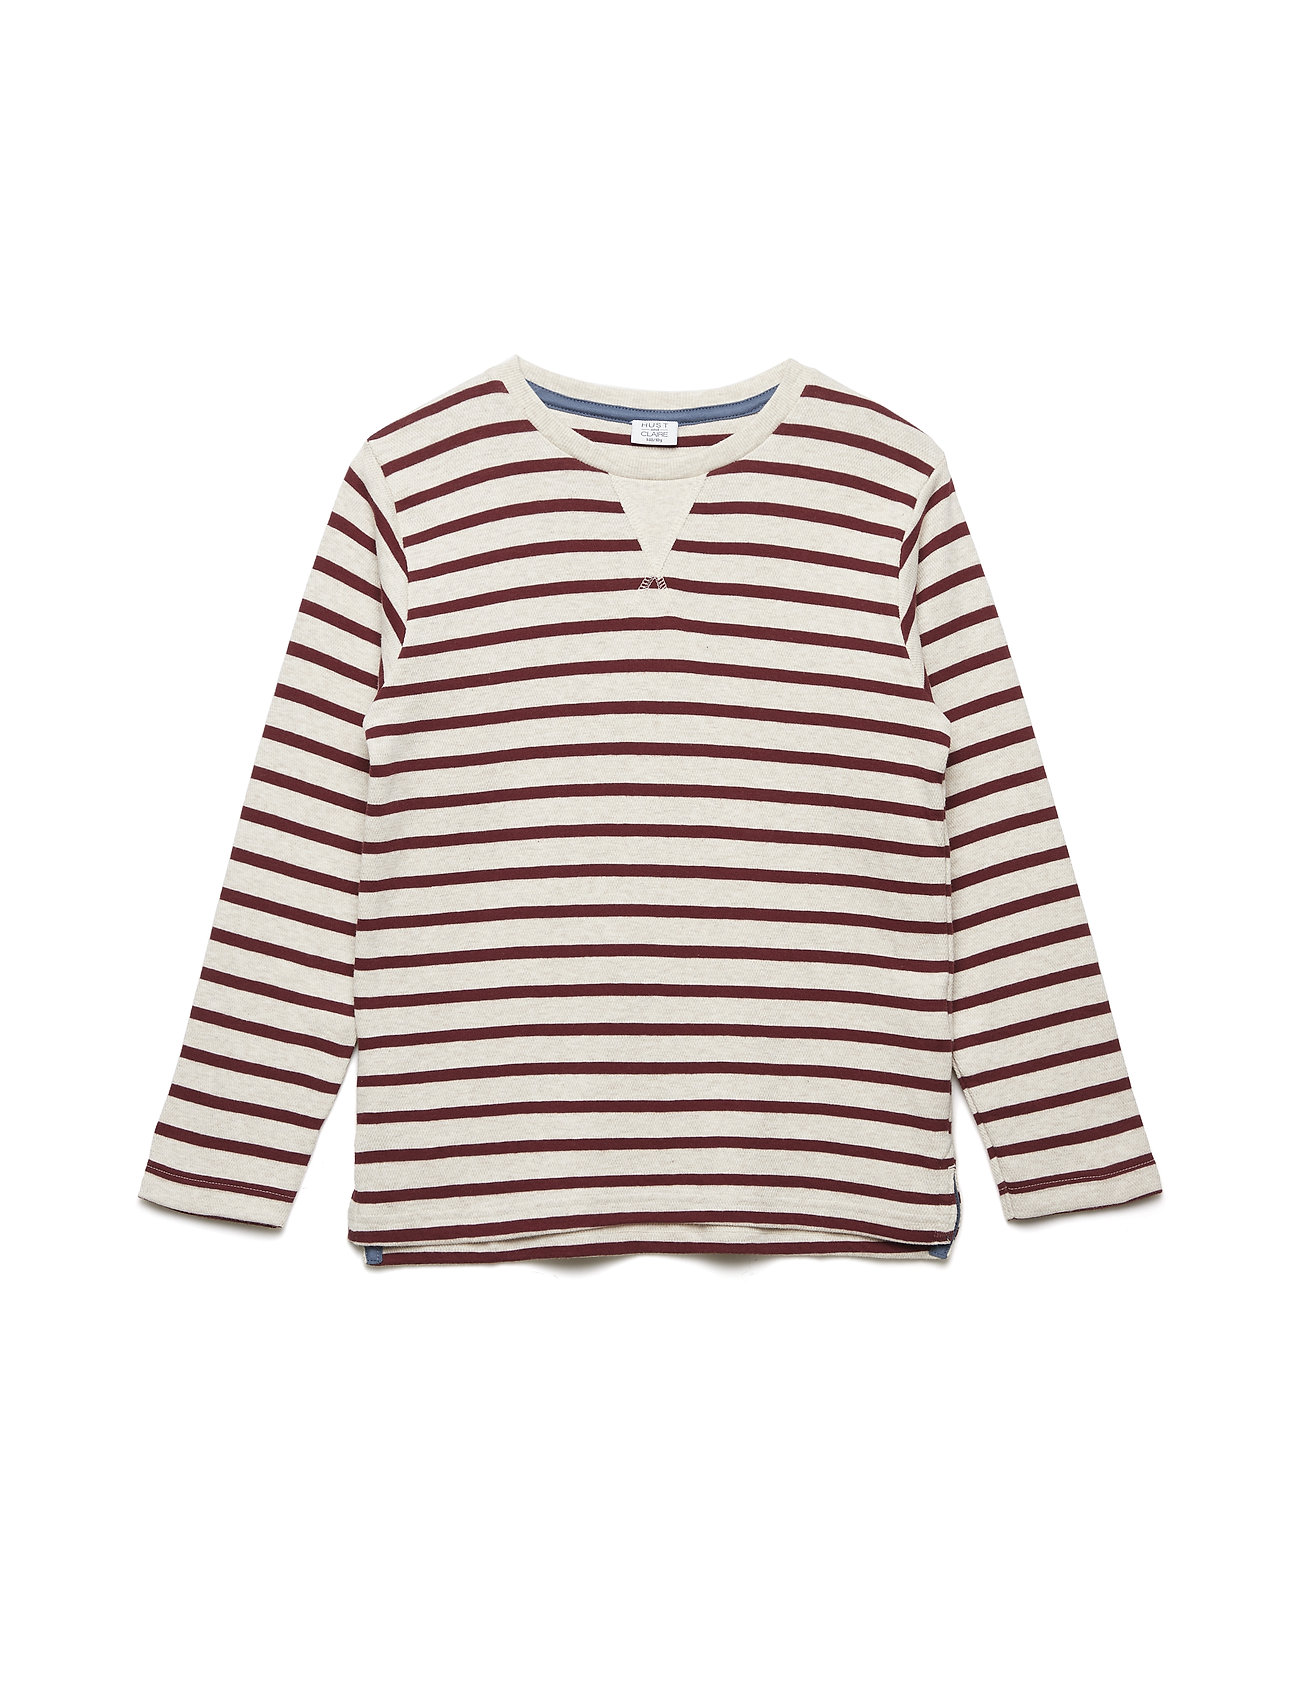 Hust & Claire Andre - T-shirt L/S